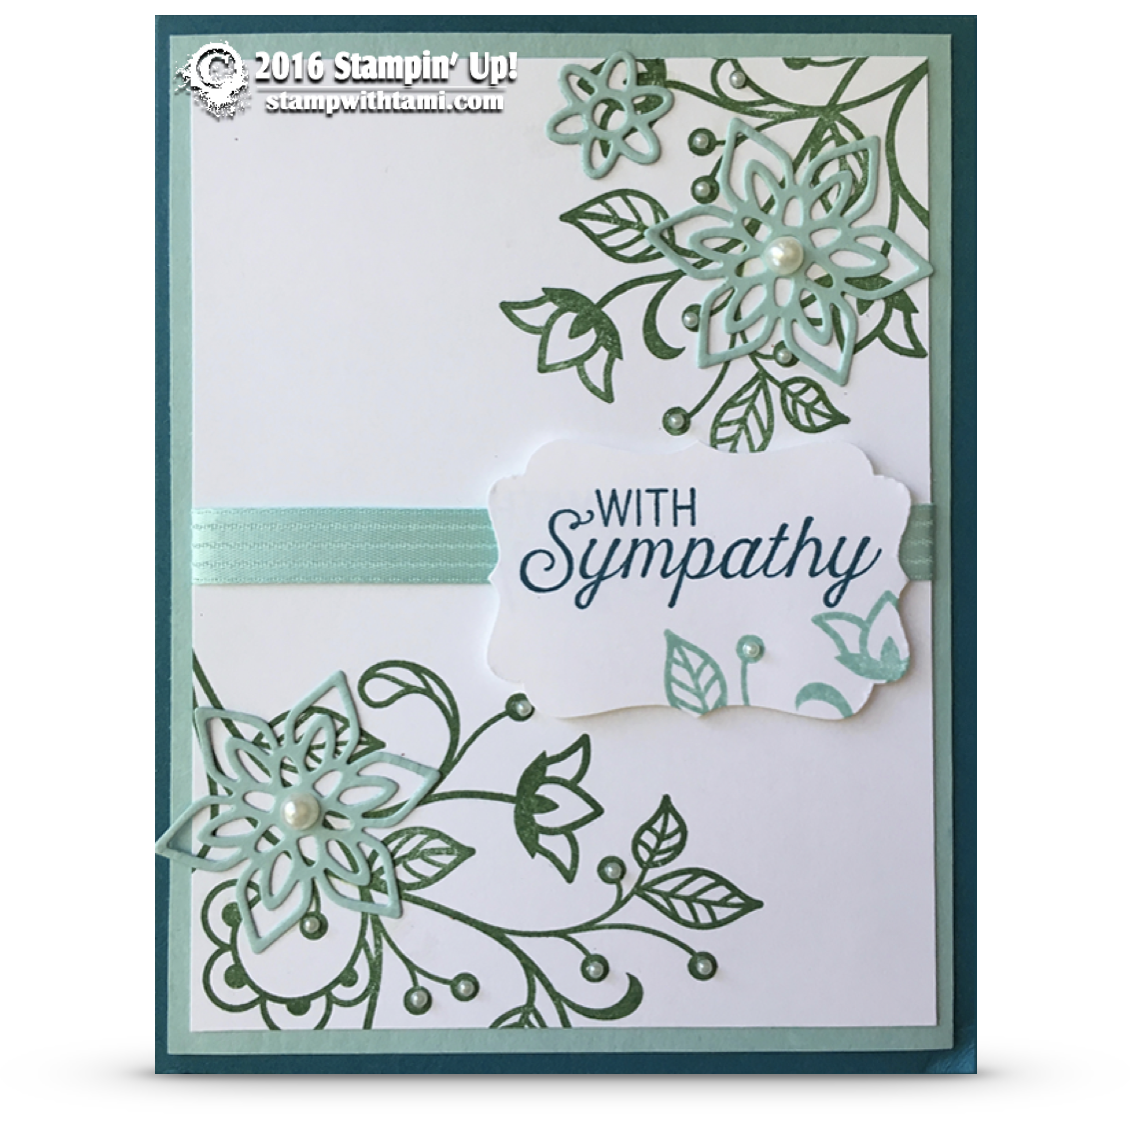 Sympathy Stampin Up Flourishing Phrases Card Cards Inspire Create Pinterest Cards